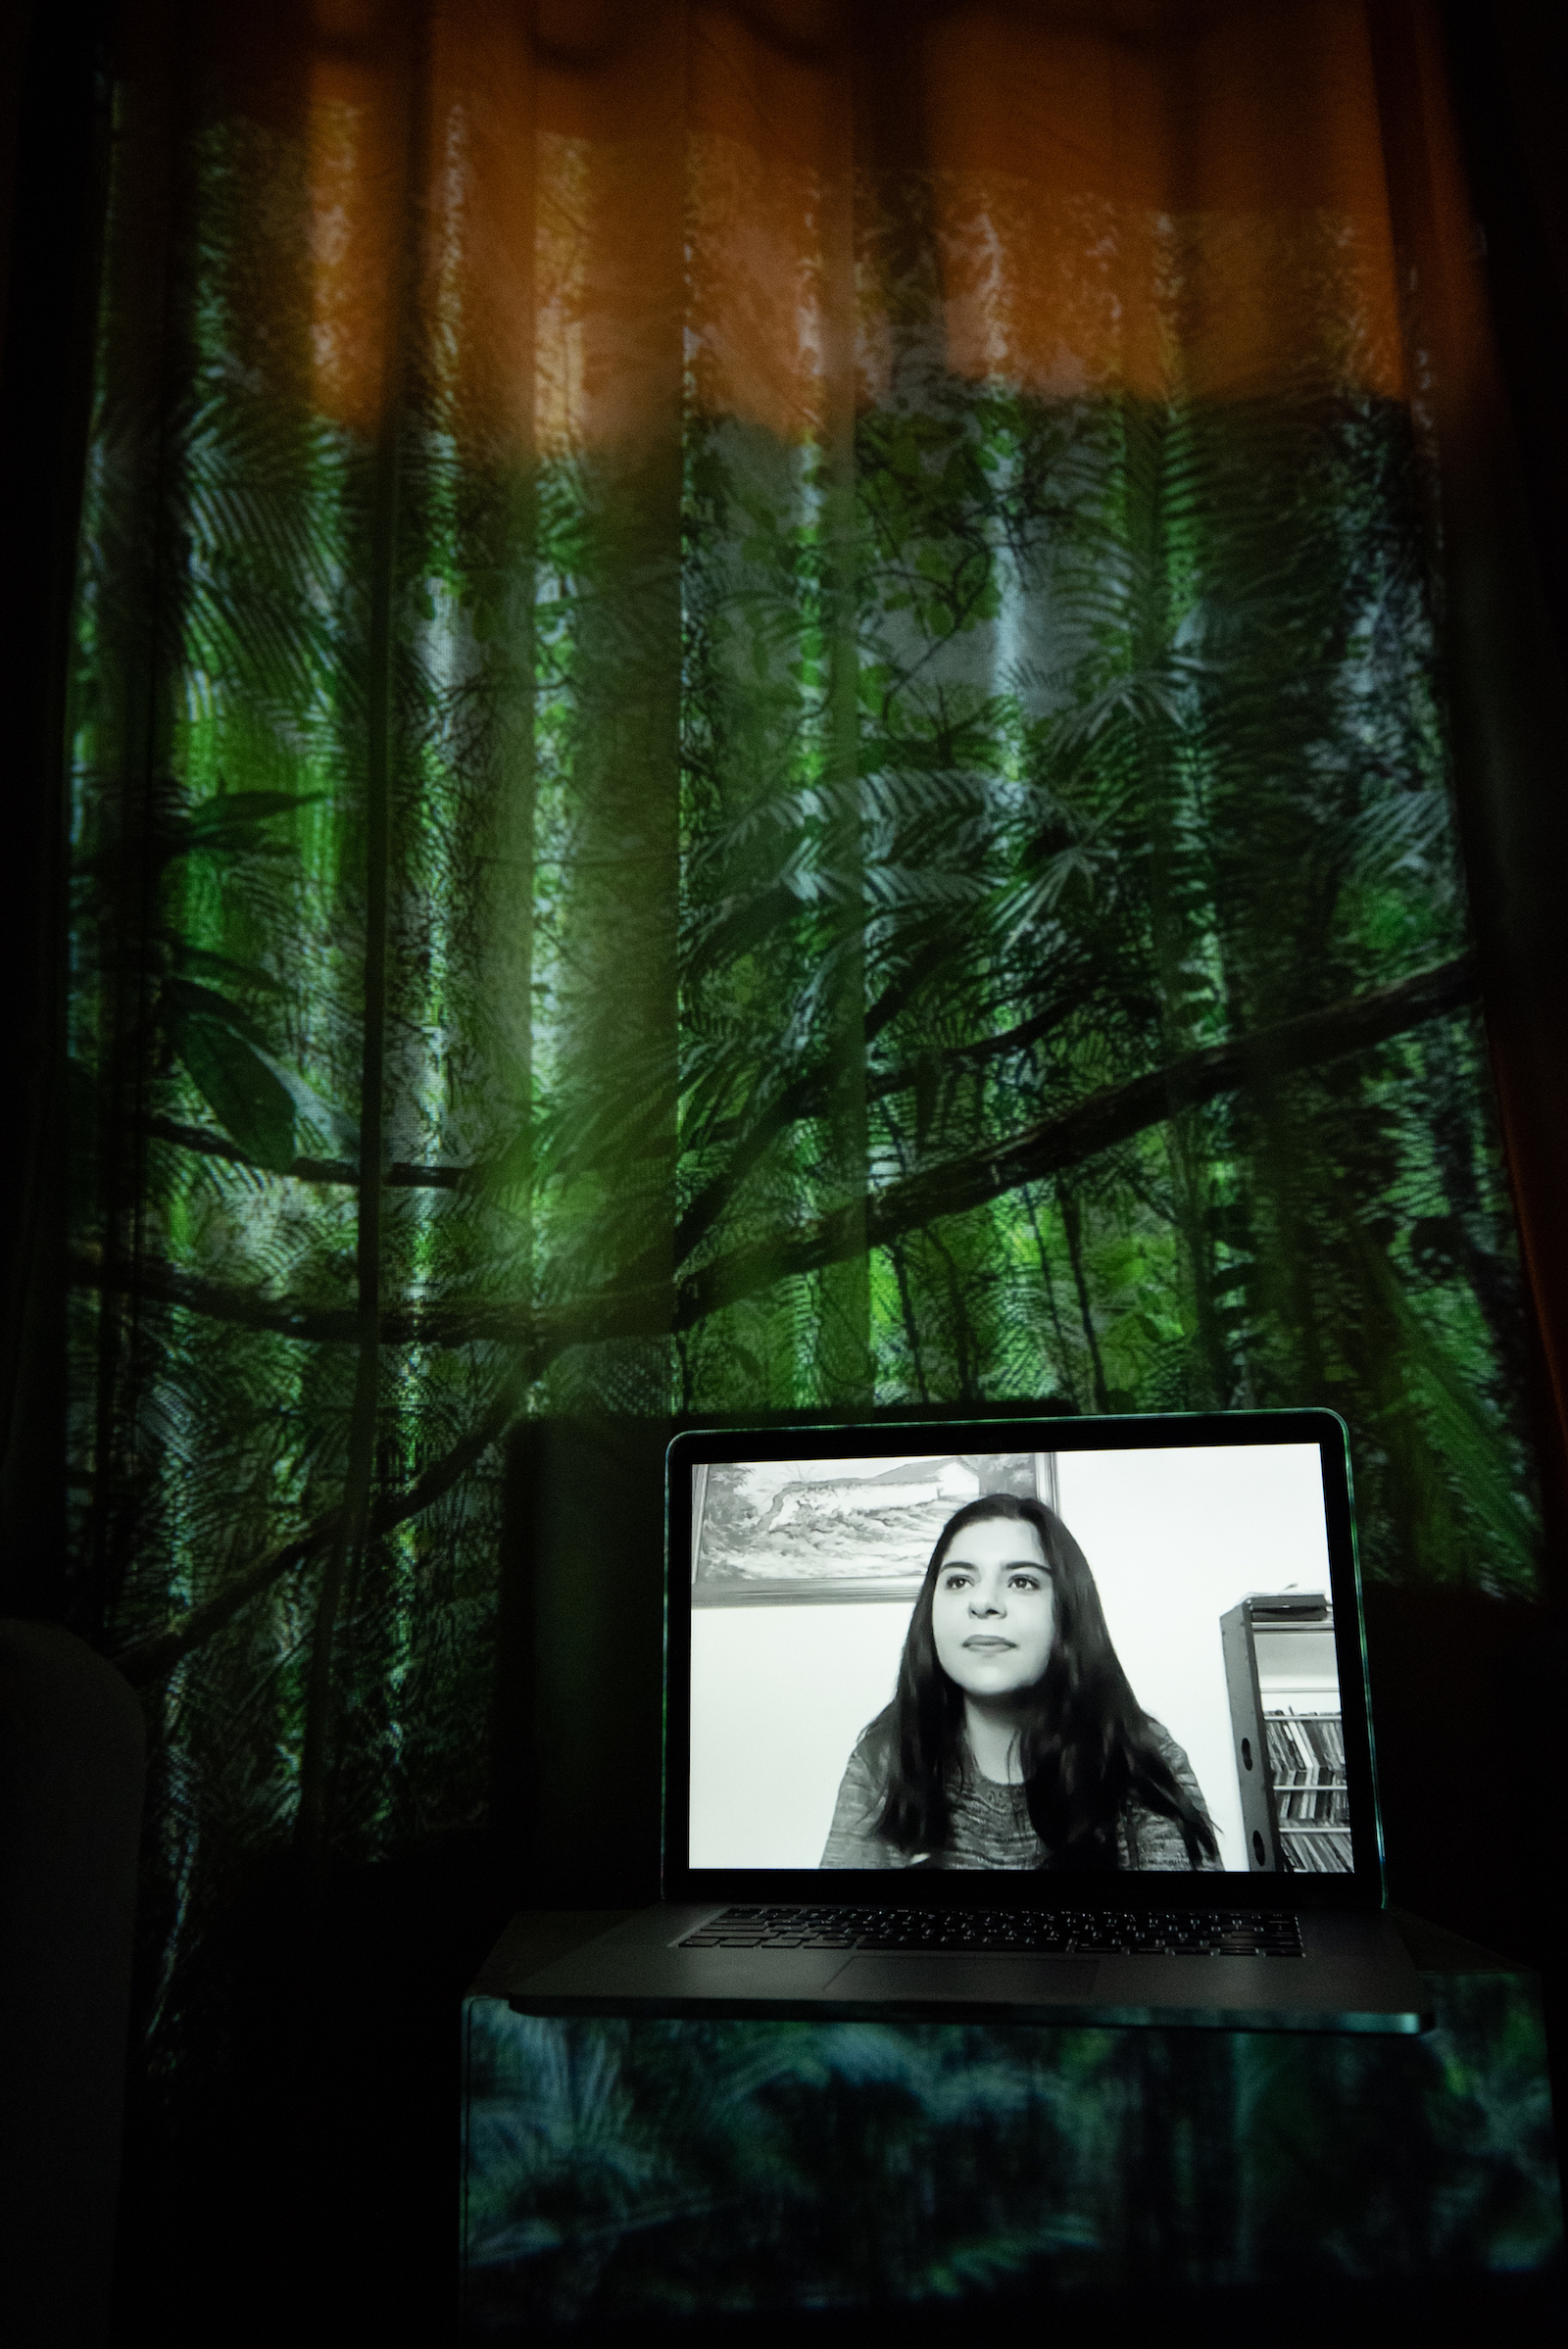 Sofía Hernández, Re-Earth Initiative Co-Founder, Fridays For Future Organizer. Projected Image: En la Selva, Lacandon Jungle, Mexico, December 2020.